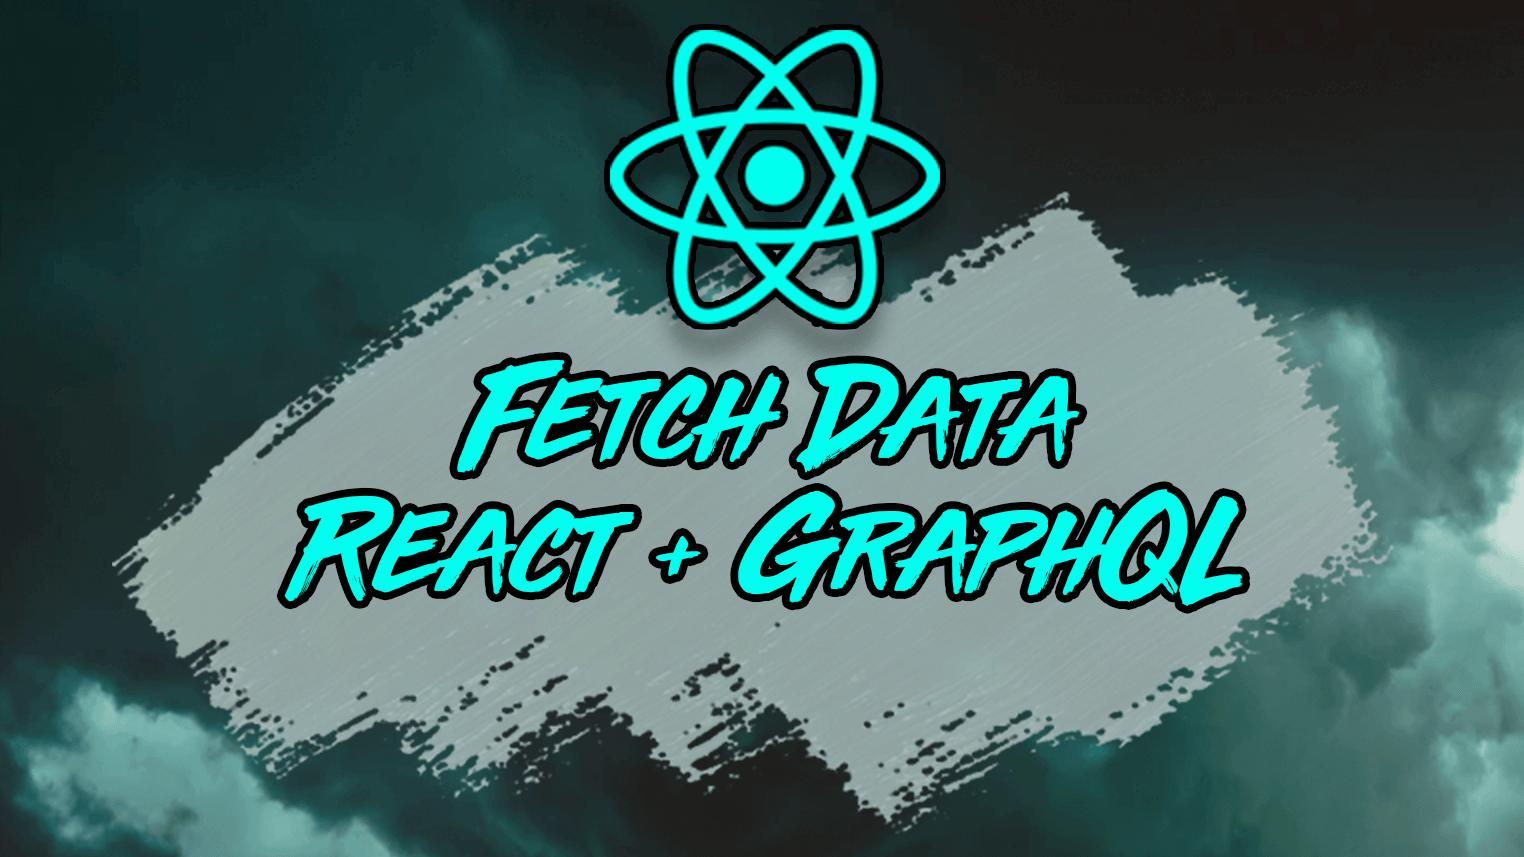 5 Ways to Fetch Data in React from a GraphQL API